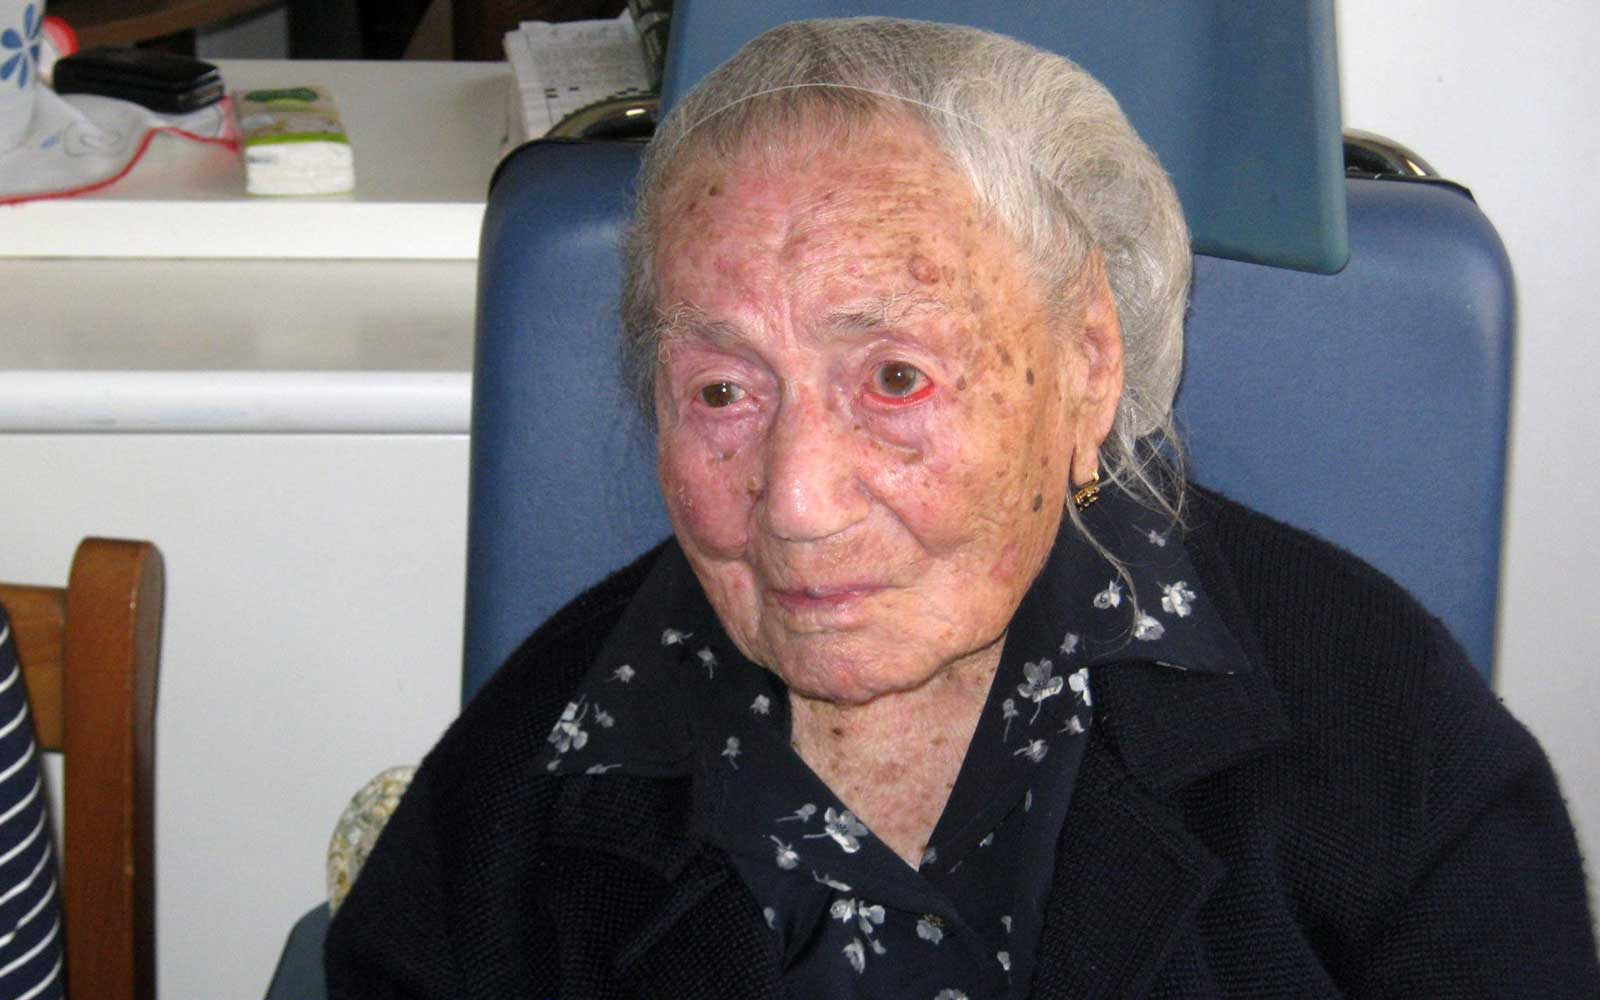 Europe's Oldest Living Person Said She Reached 116 Years Old by Eating Chocolate Every Day